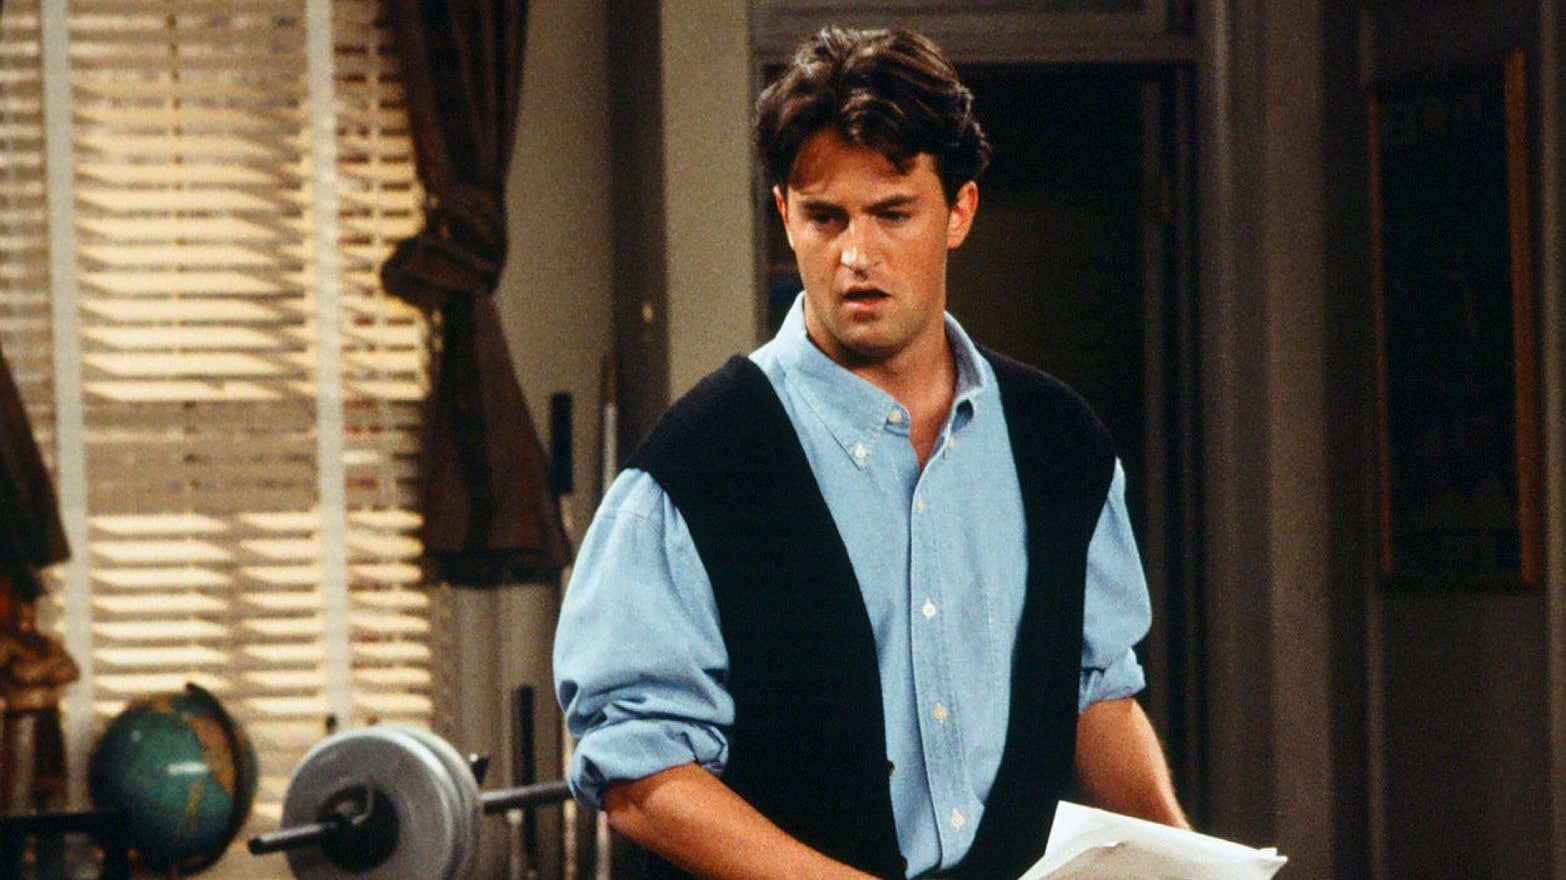 Was Chandler Bing supposed to be gay in Friends?